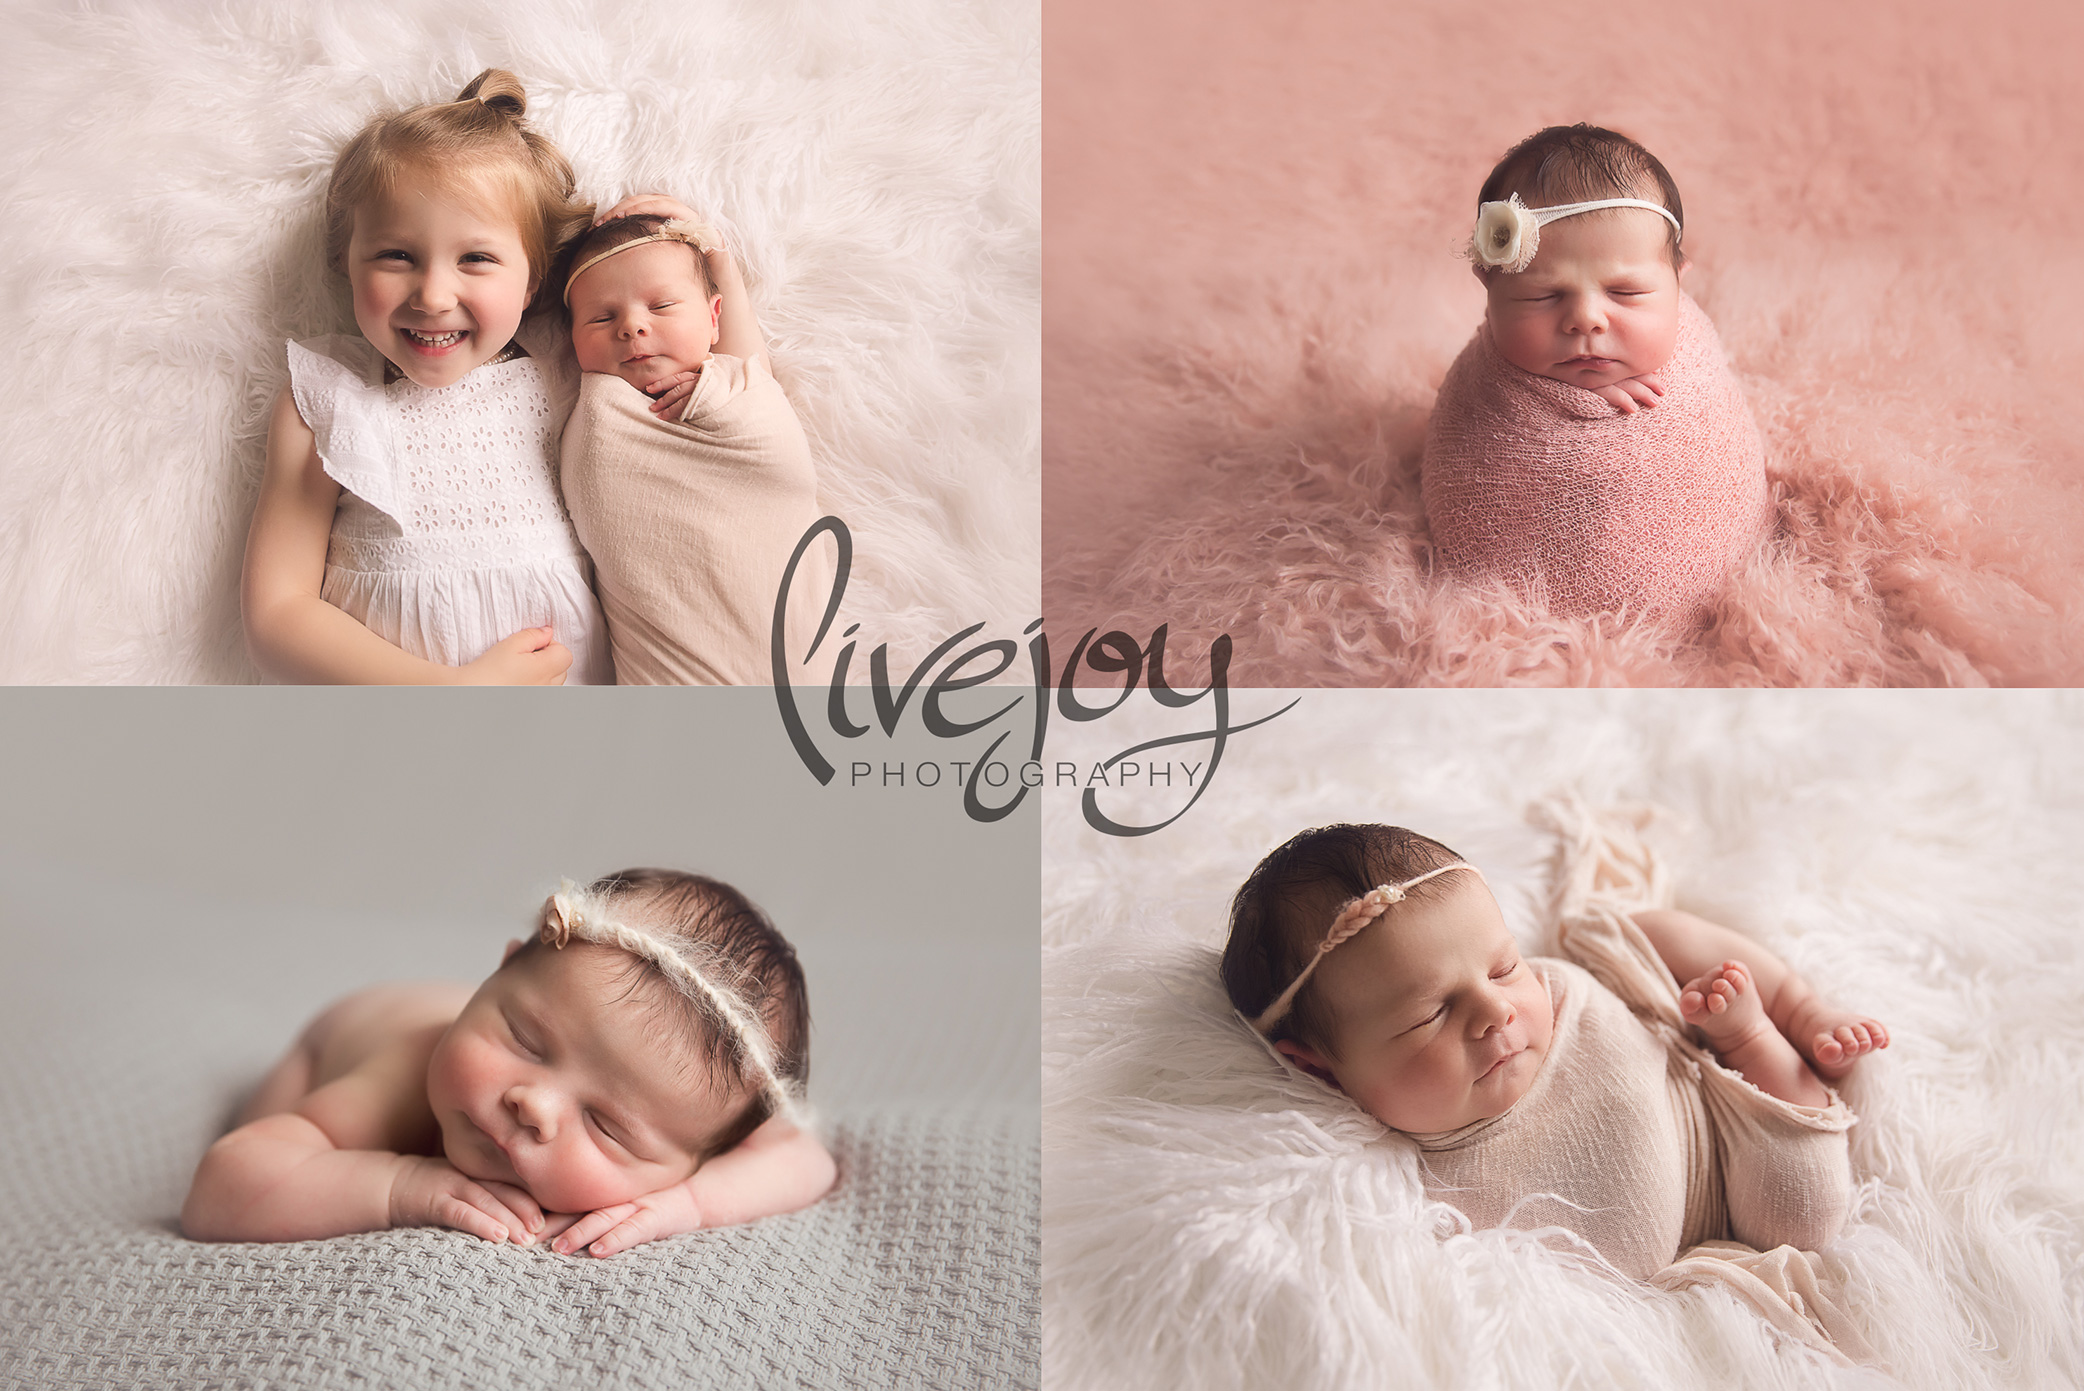 Baby Girl | Newborn Photography | Oregon | LiveJoy Photography